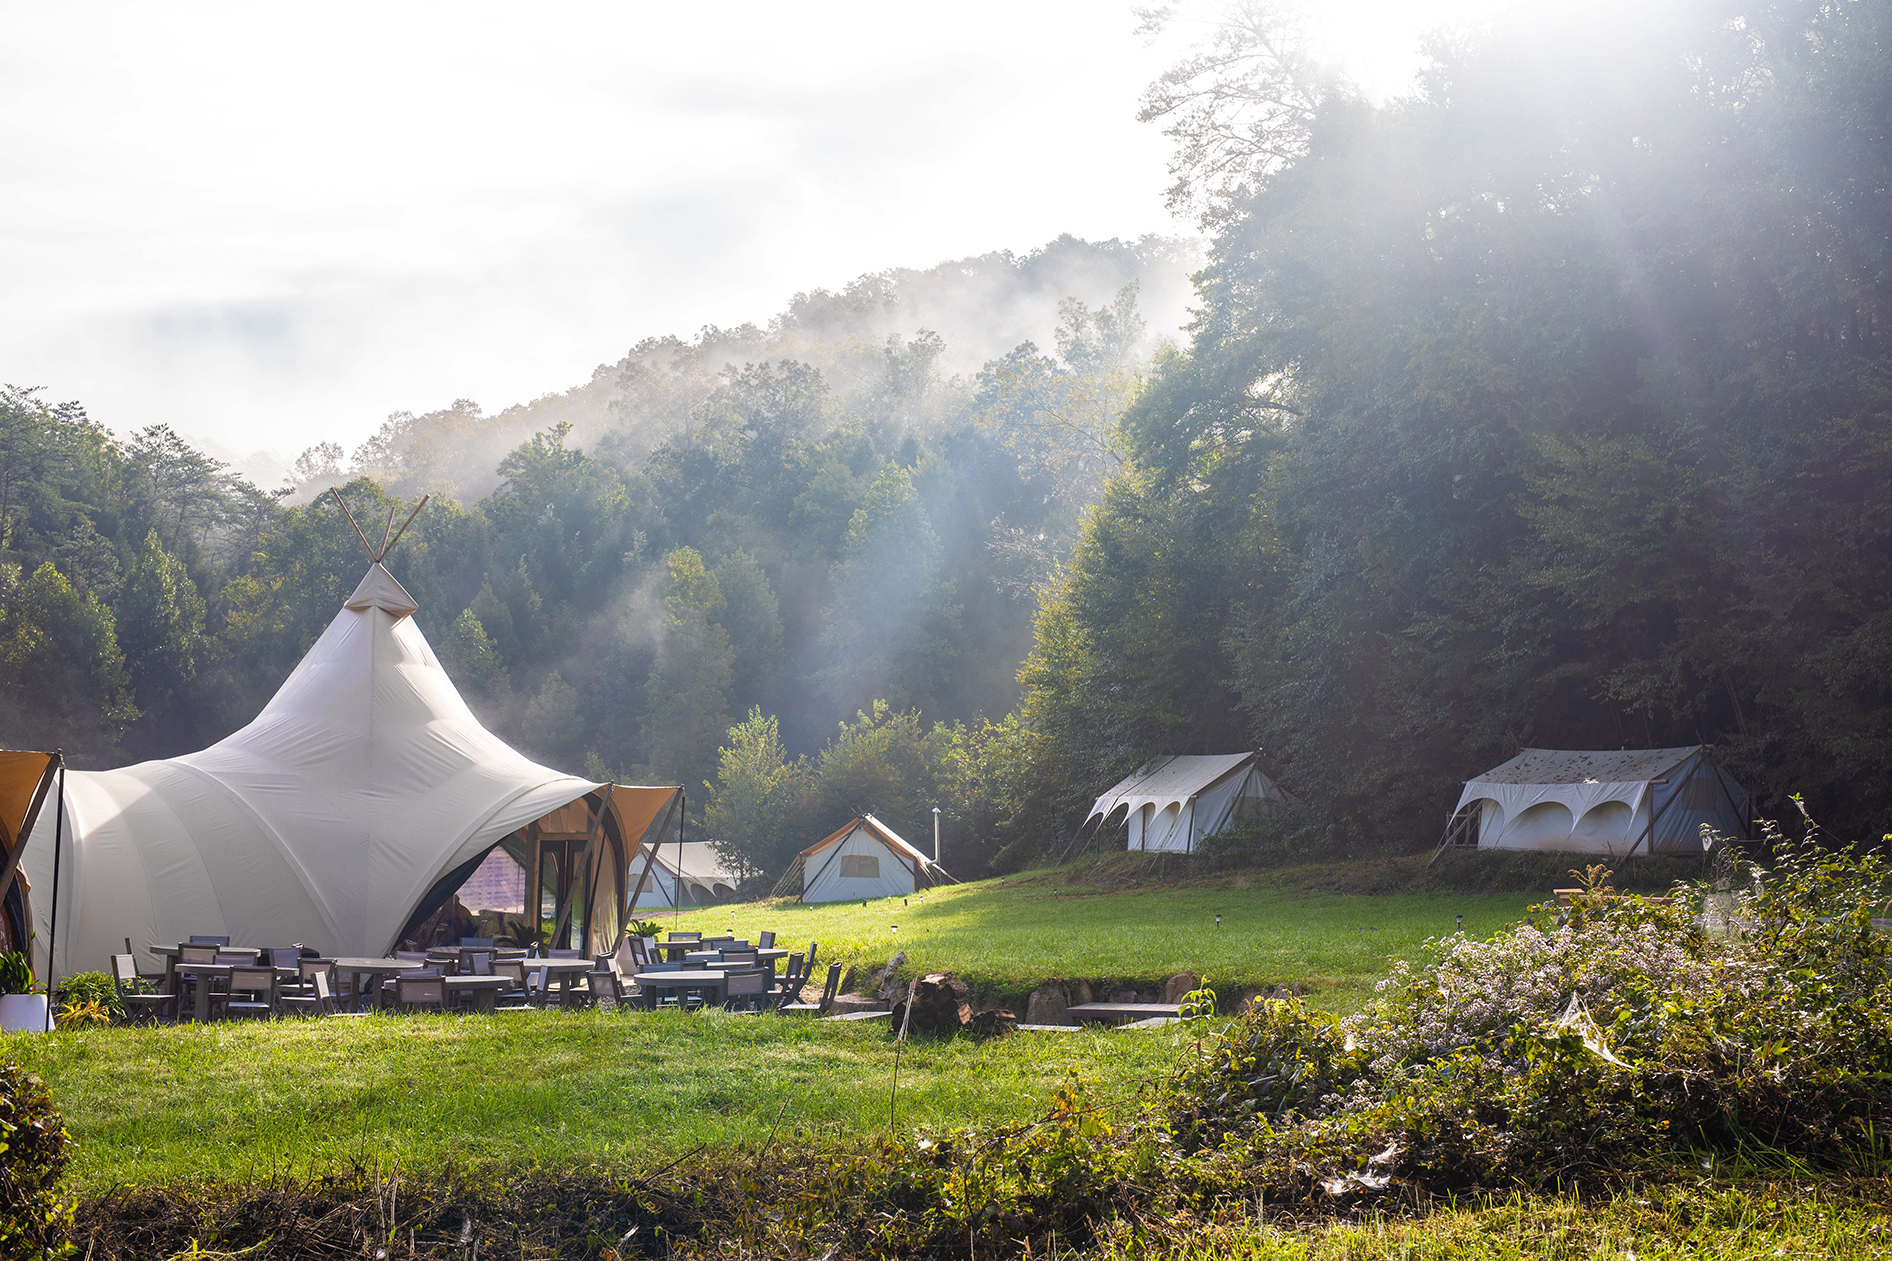 Under Canvas has eight locations across the country, including one near Great Smoky Mountains National Park.